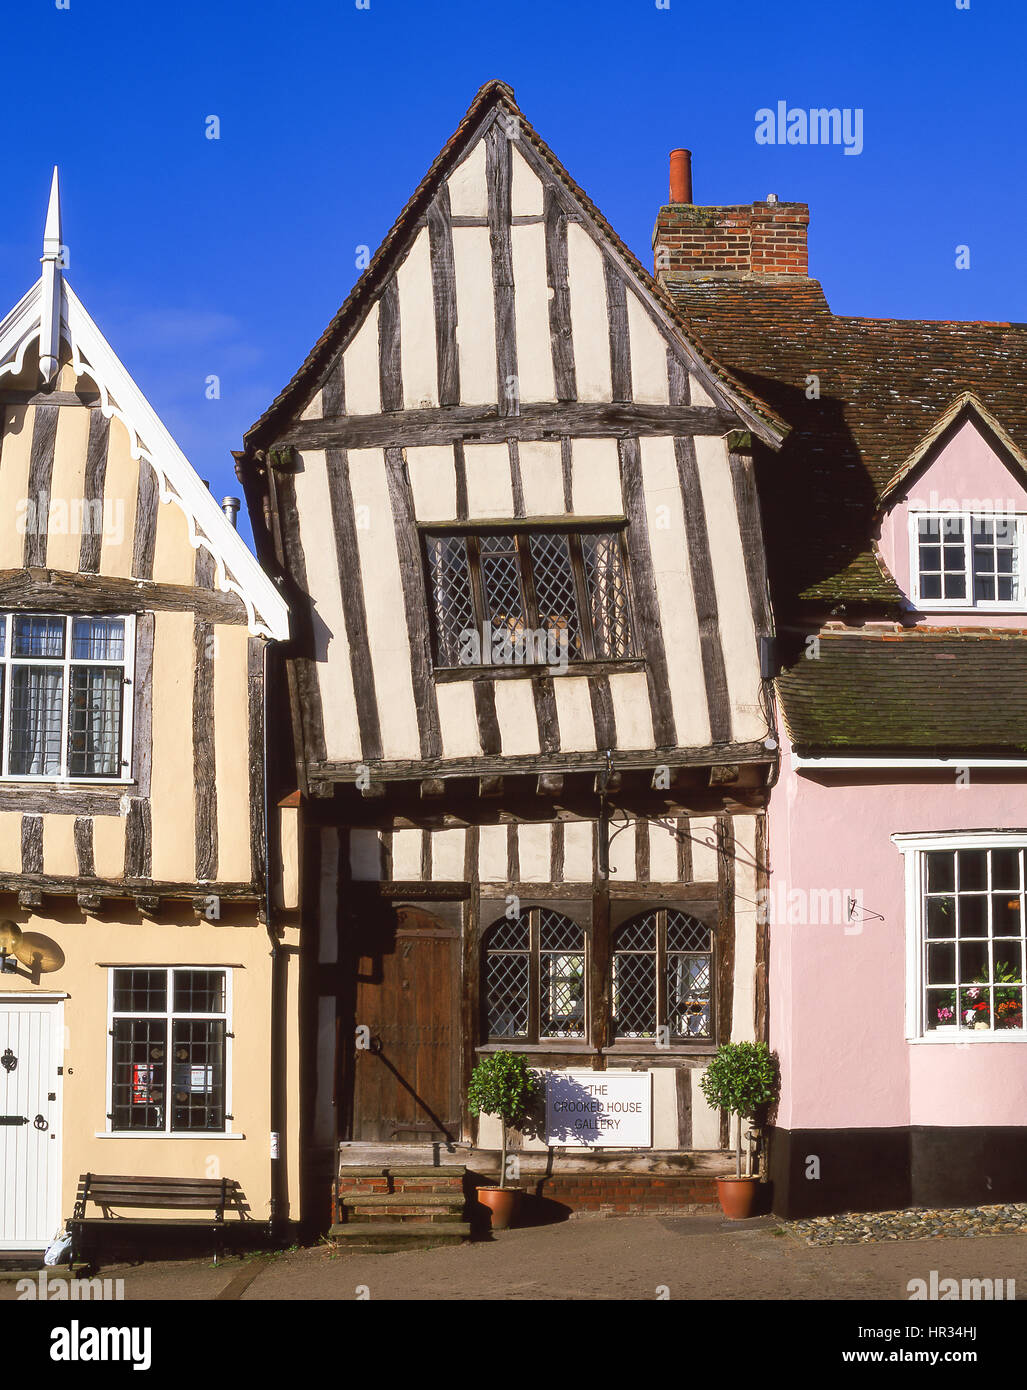 Half-timbered medieval cottages, High Street, Lavenham, Suffolk, England, United Kingdom - Stock Image